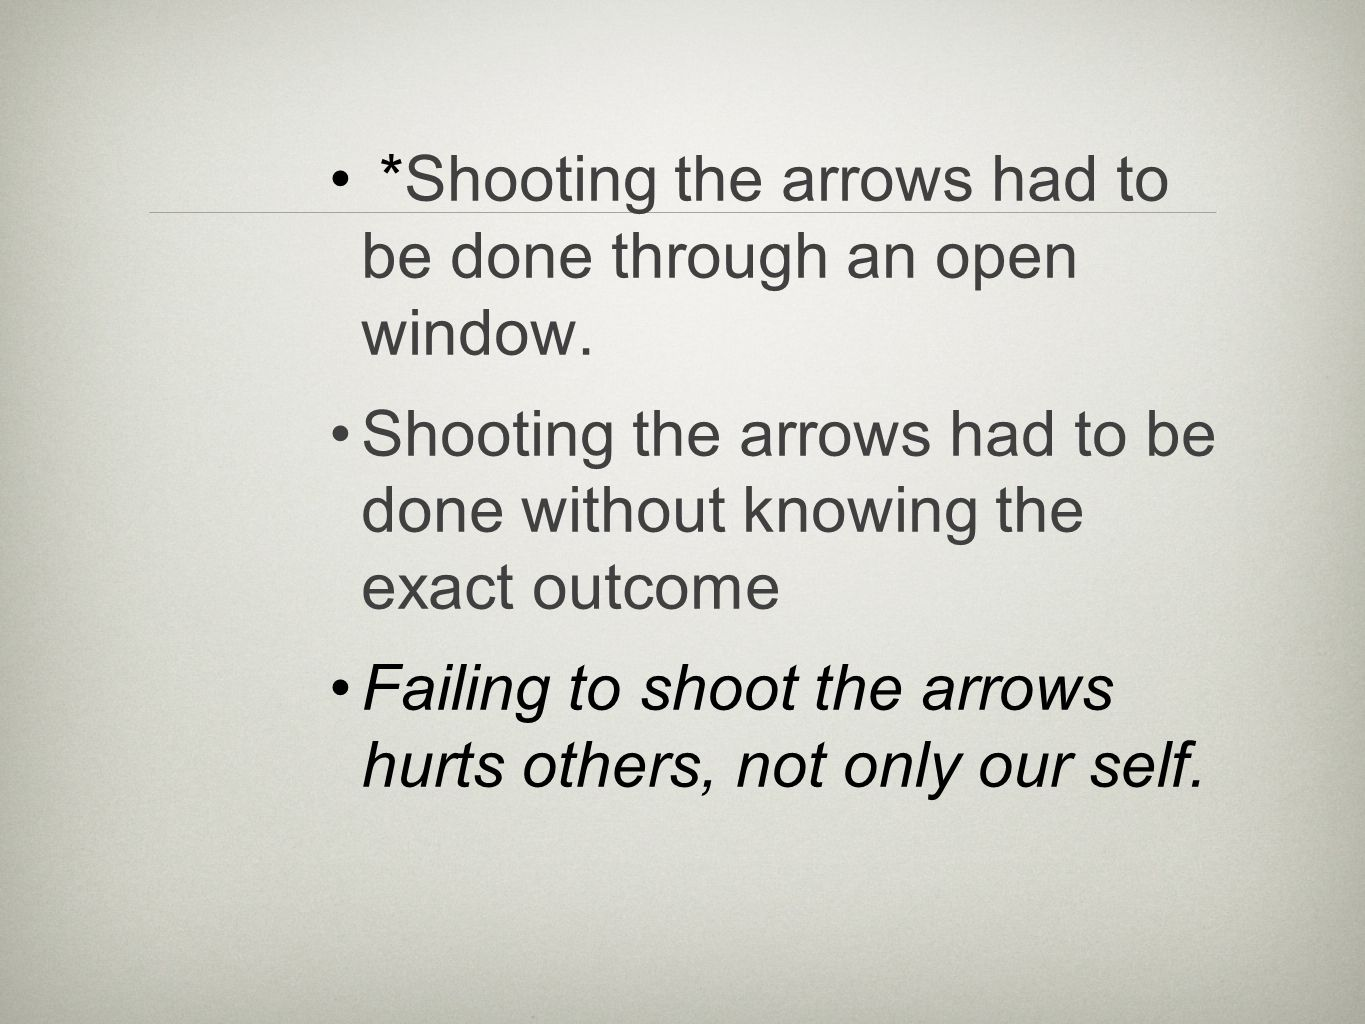 *Shooting the arrows had to be done through an open window.